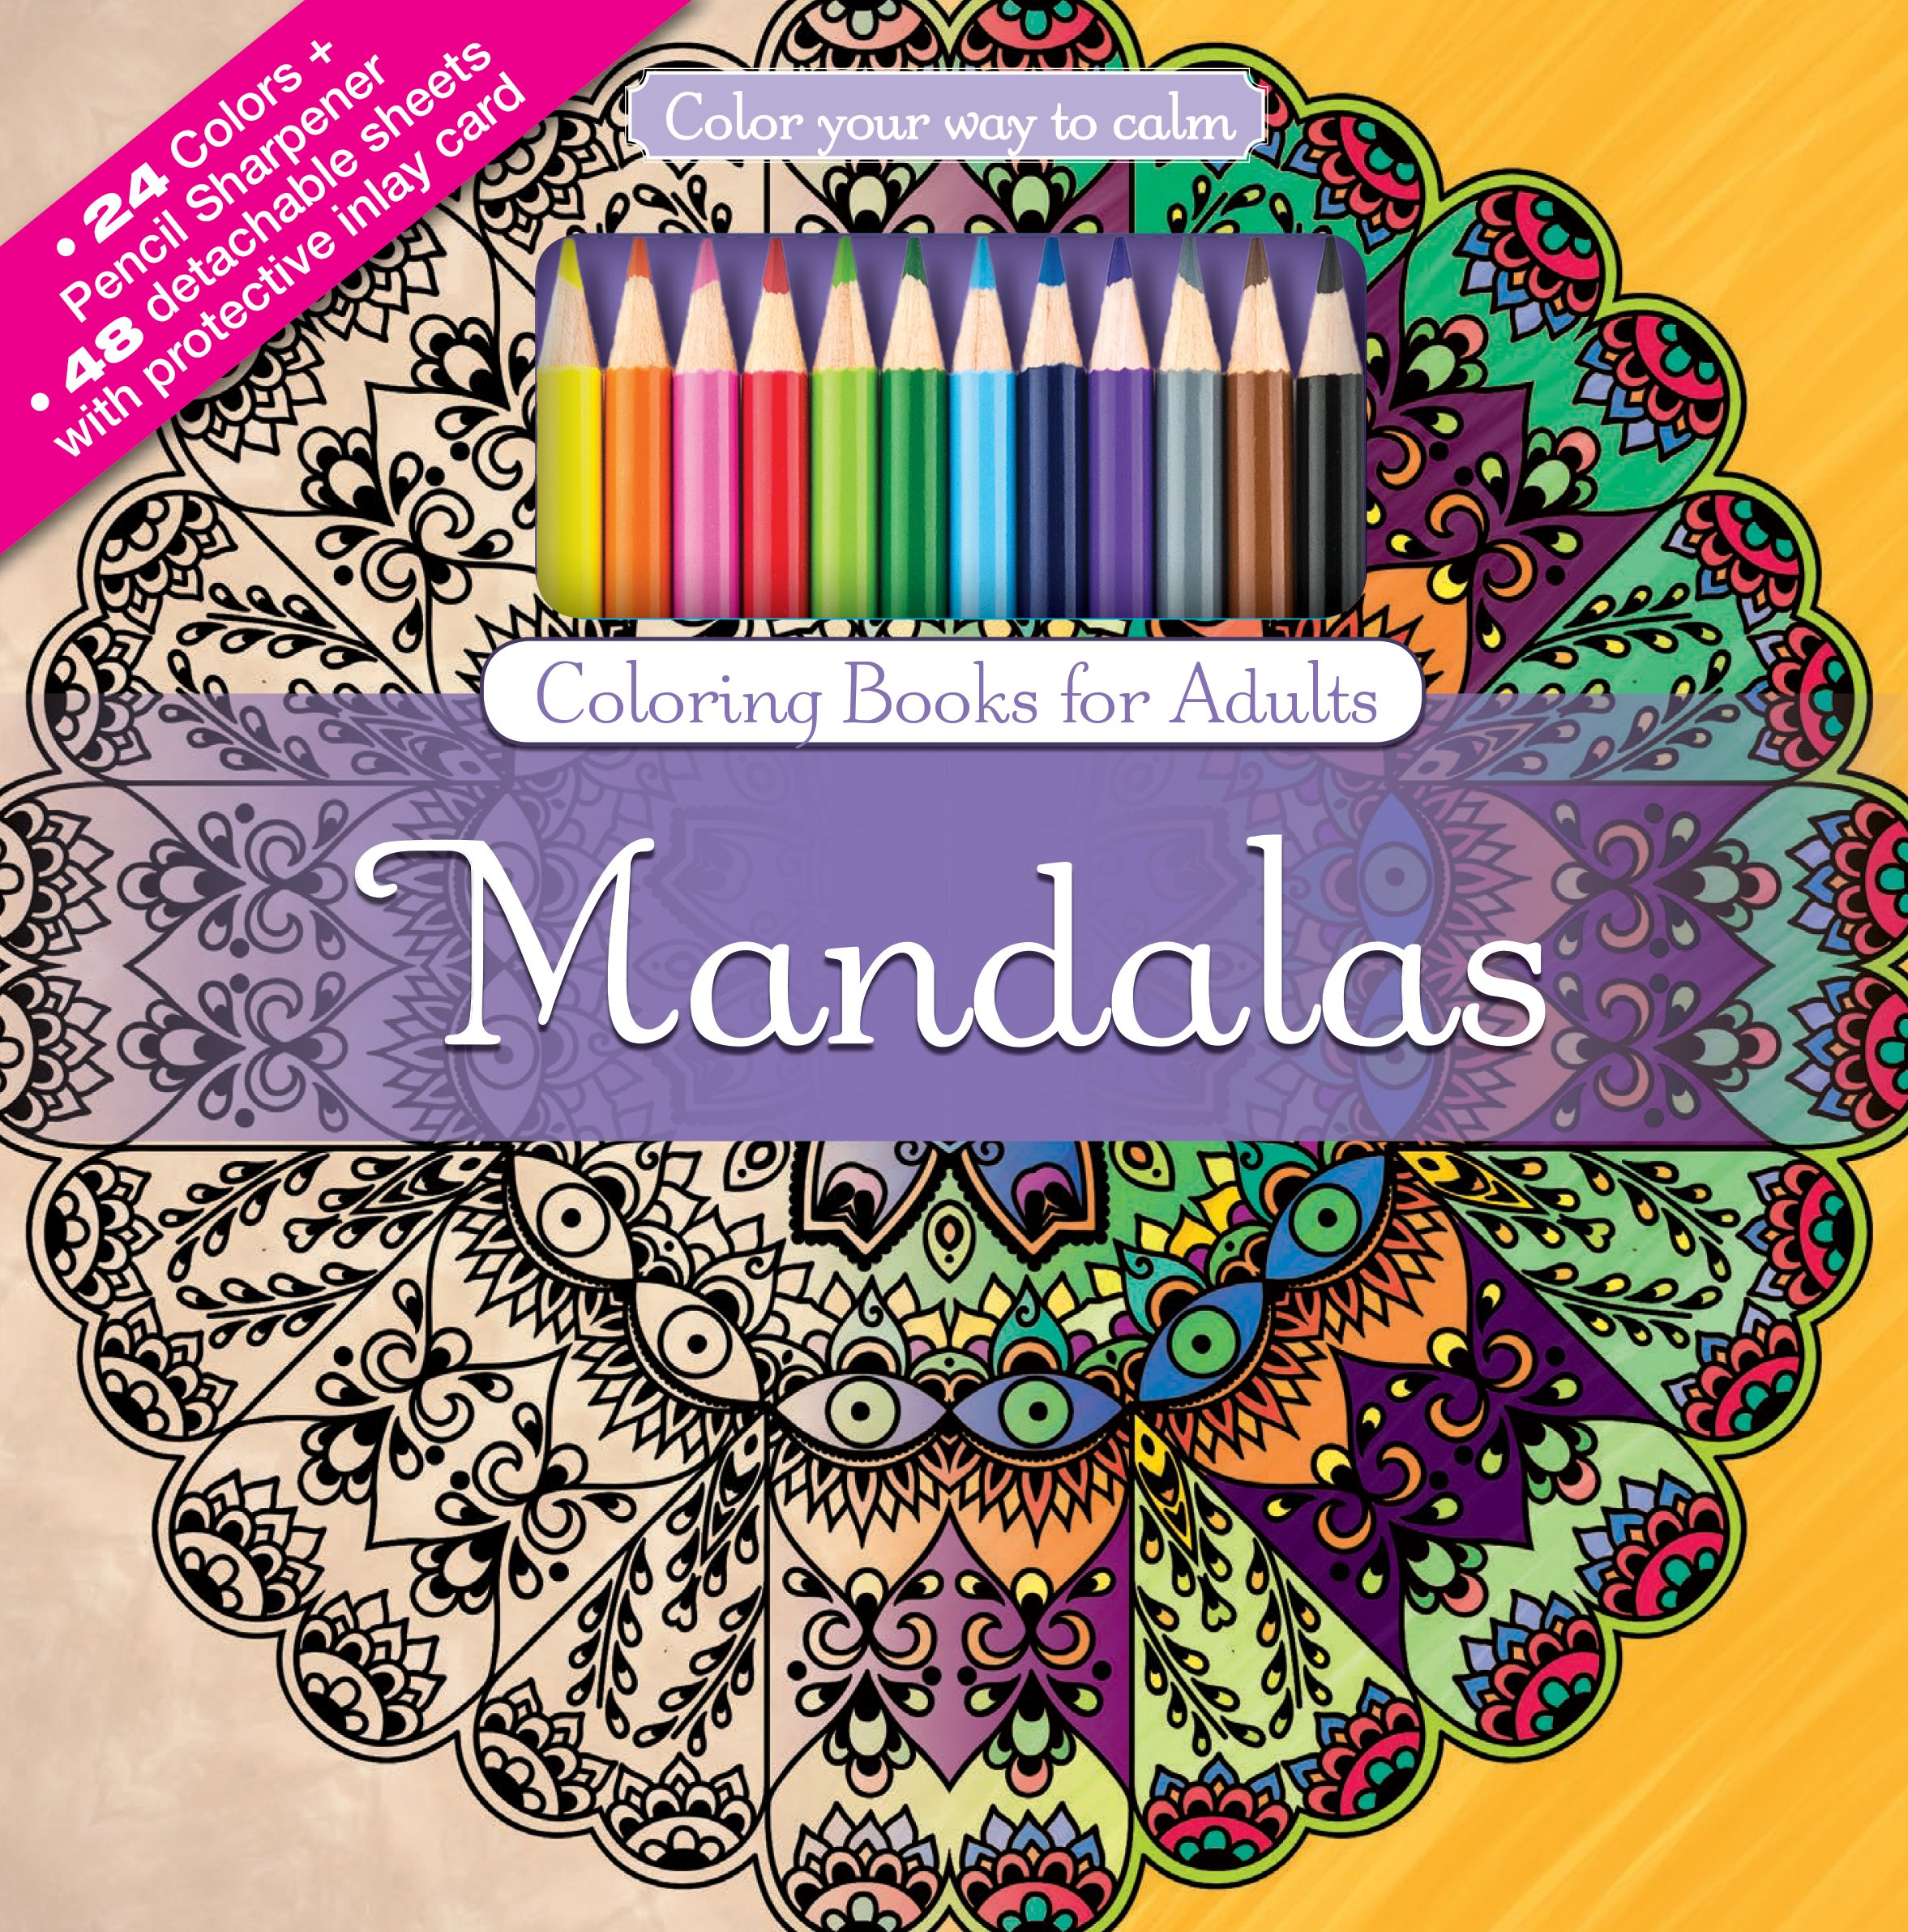 Amazon.com: Mandalas Adult Coloring Book Set With 24 Colored Pencils ...